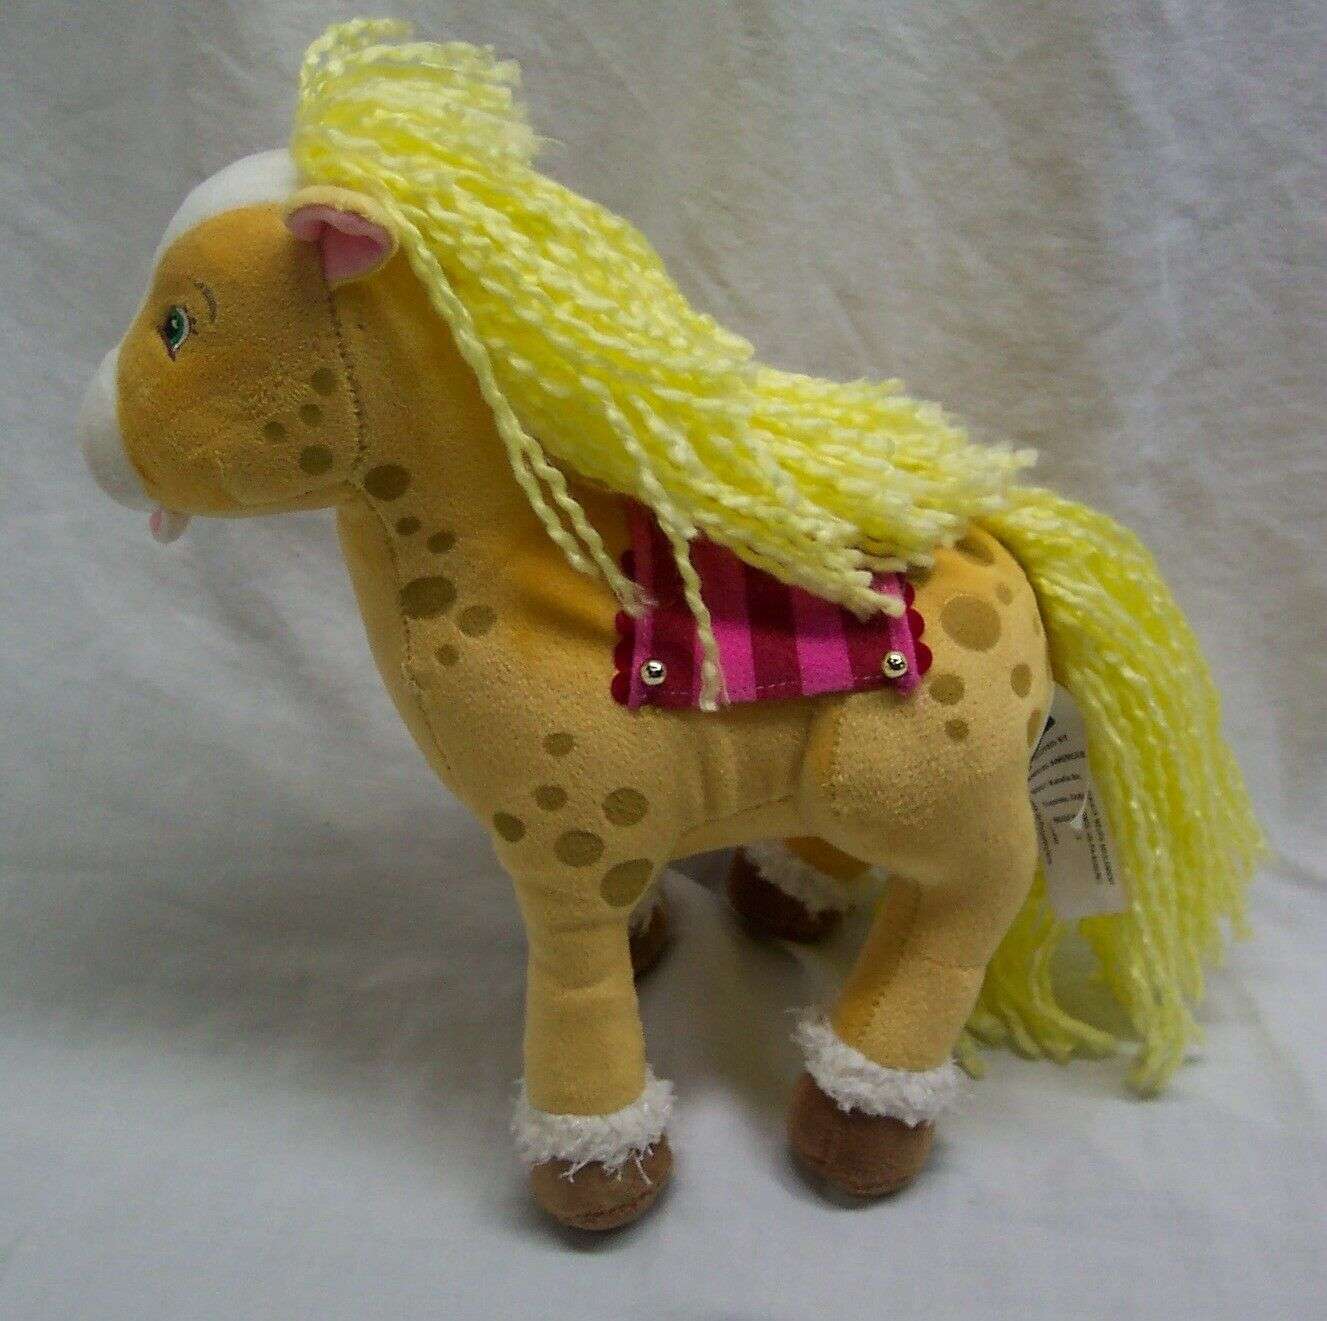 "Primary image for Strawberry Shortcake HONEY PIE HORSE 10"" Plush STUFFED ANIMAL Toy 2004 Bandai"